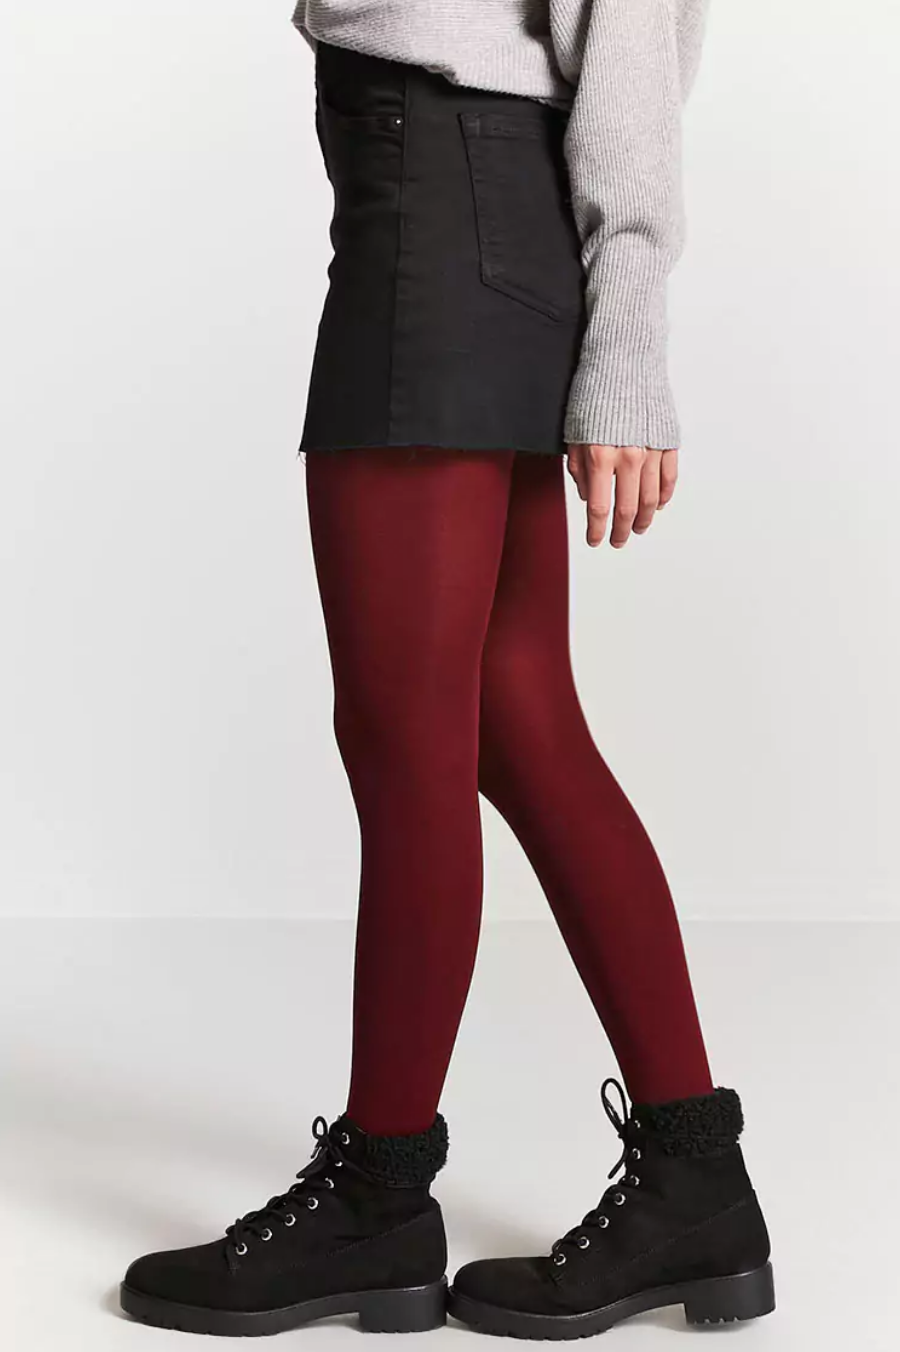 tanger outlets forever 21 semi-sheer burgundy tights